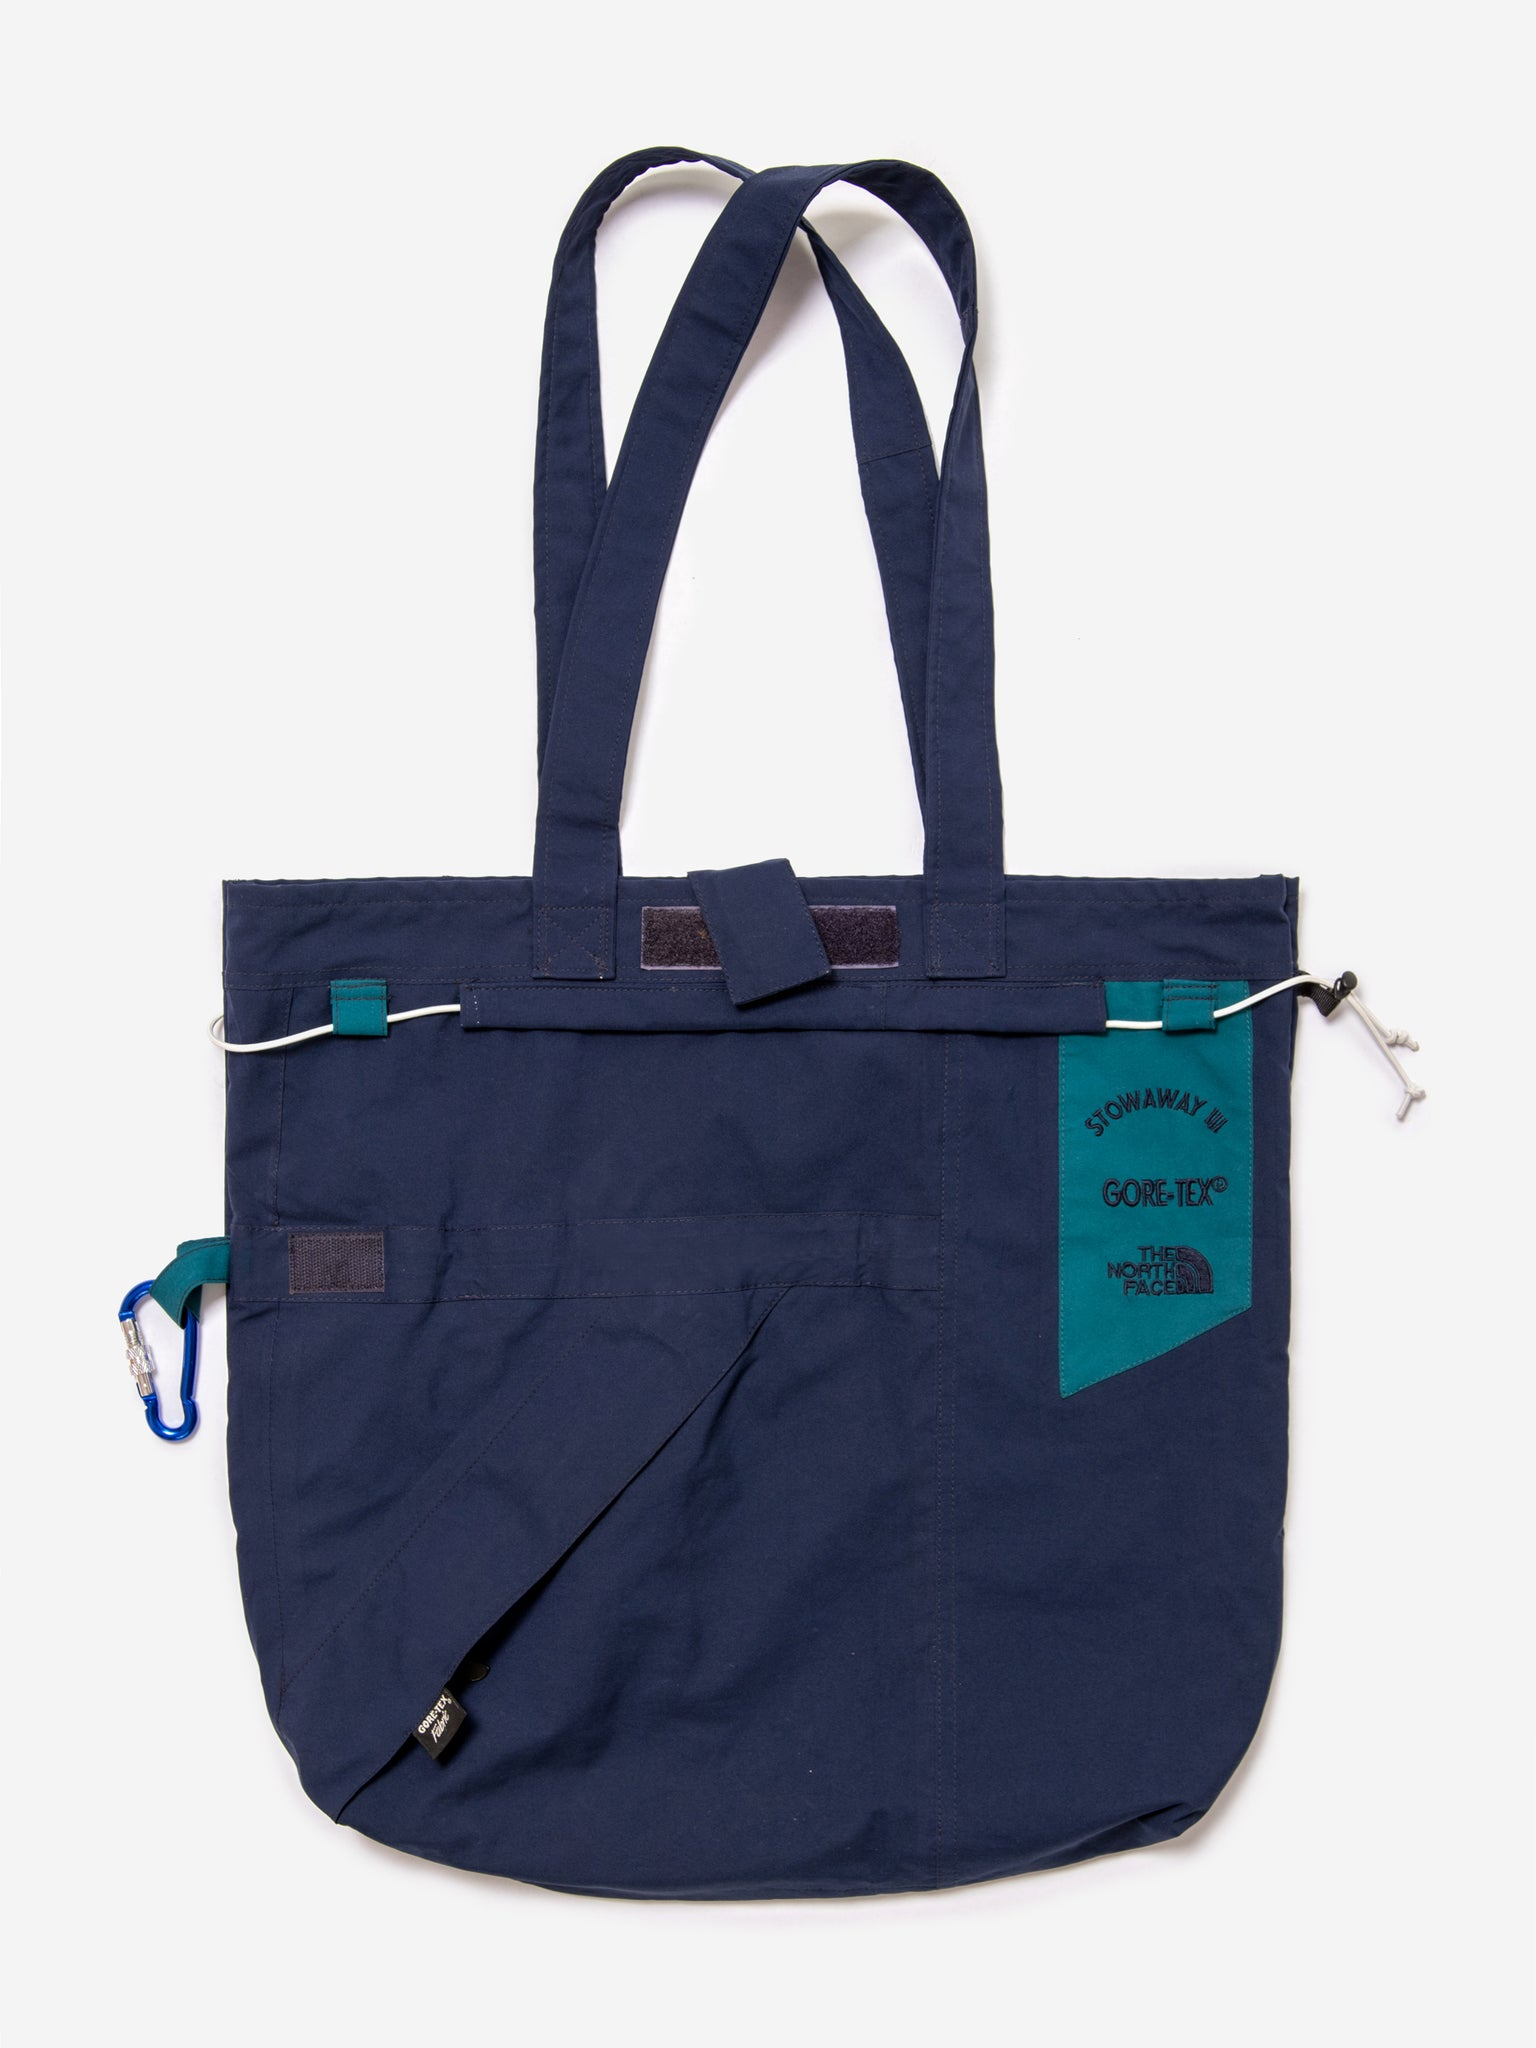 THE NORTH FACE RECONSTRUCTED TOTE BAG B.005